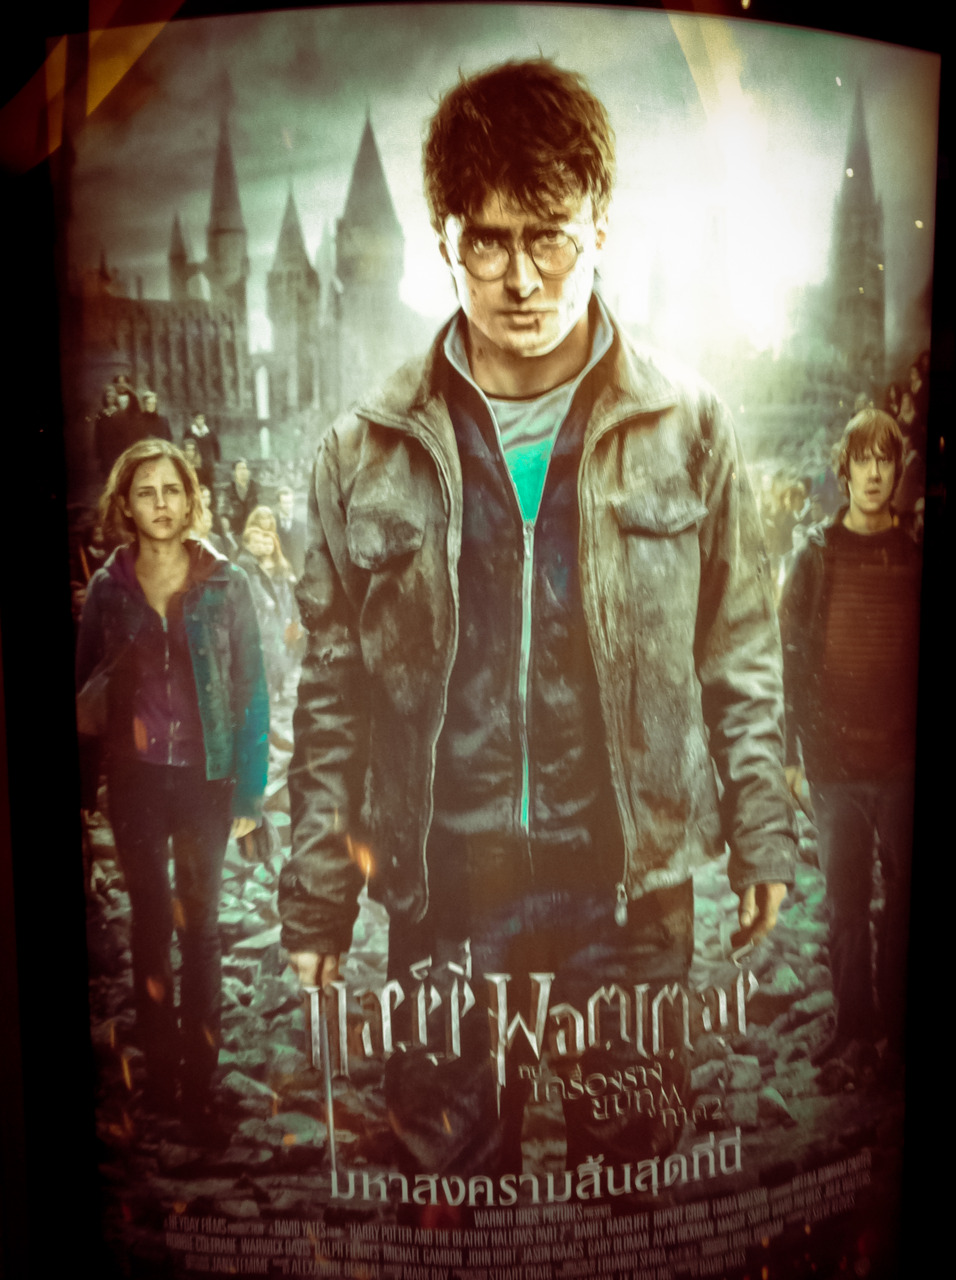 HARRY POTTER 7 part 2.  For 4 tickets it was only $10 !! What a deal, and we even got to honor the King of Thailand during the previews as it showed a small bio set to the national anthem.